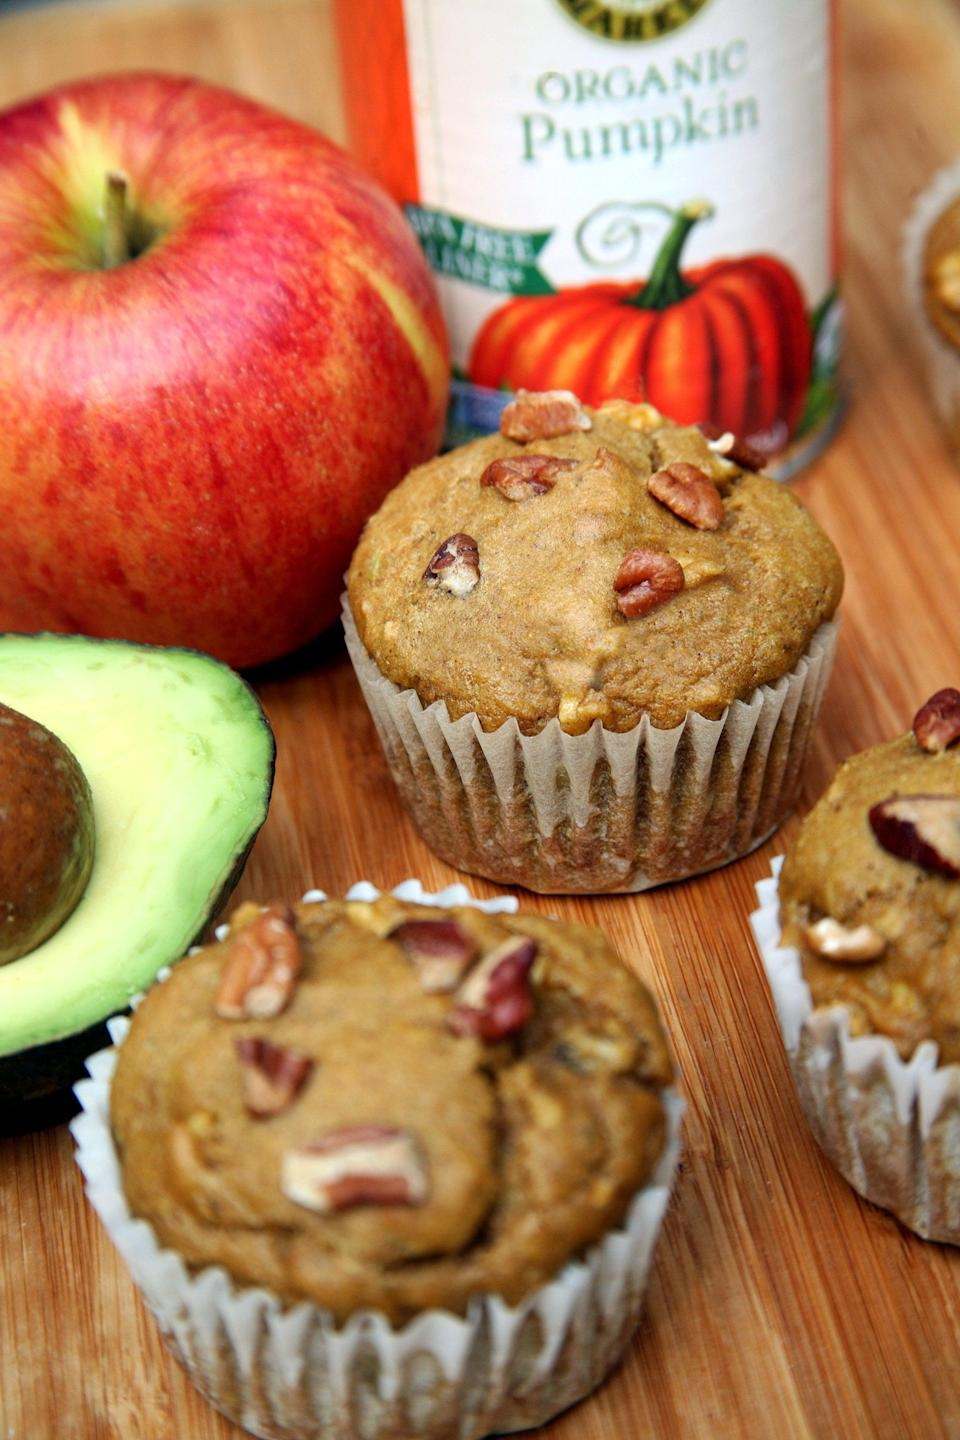 "<p>This pumpkin muffin recipe just may inspire you to never bake with butter again.</p> <p><strong>Calories:</strong> 144 per muffin<br> <strong>Protein:</strong> 3.3 grams</p> <p><strong>Get the recipe:</strong> <a href=""https://www.popsugar.com/fitness/Pumpkin-Muffins-Avocado-35763042"" class=""link rapid-noclick-resp"" rel=""nofollow noopener"" target=""_blank"" data-ylk=""slk:pumpkin avocado muffins"">pumpkin avocado muffins</a></p>"